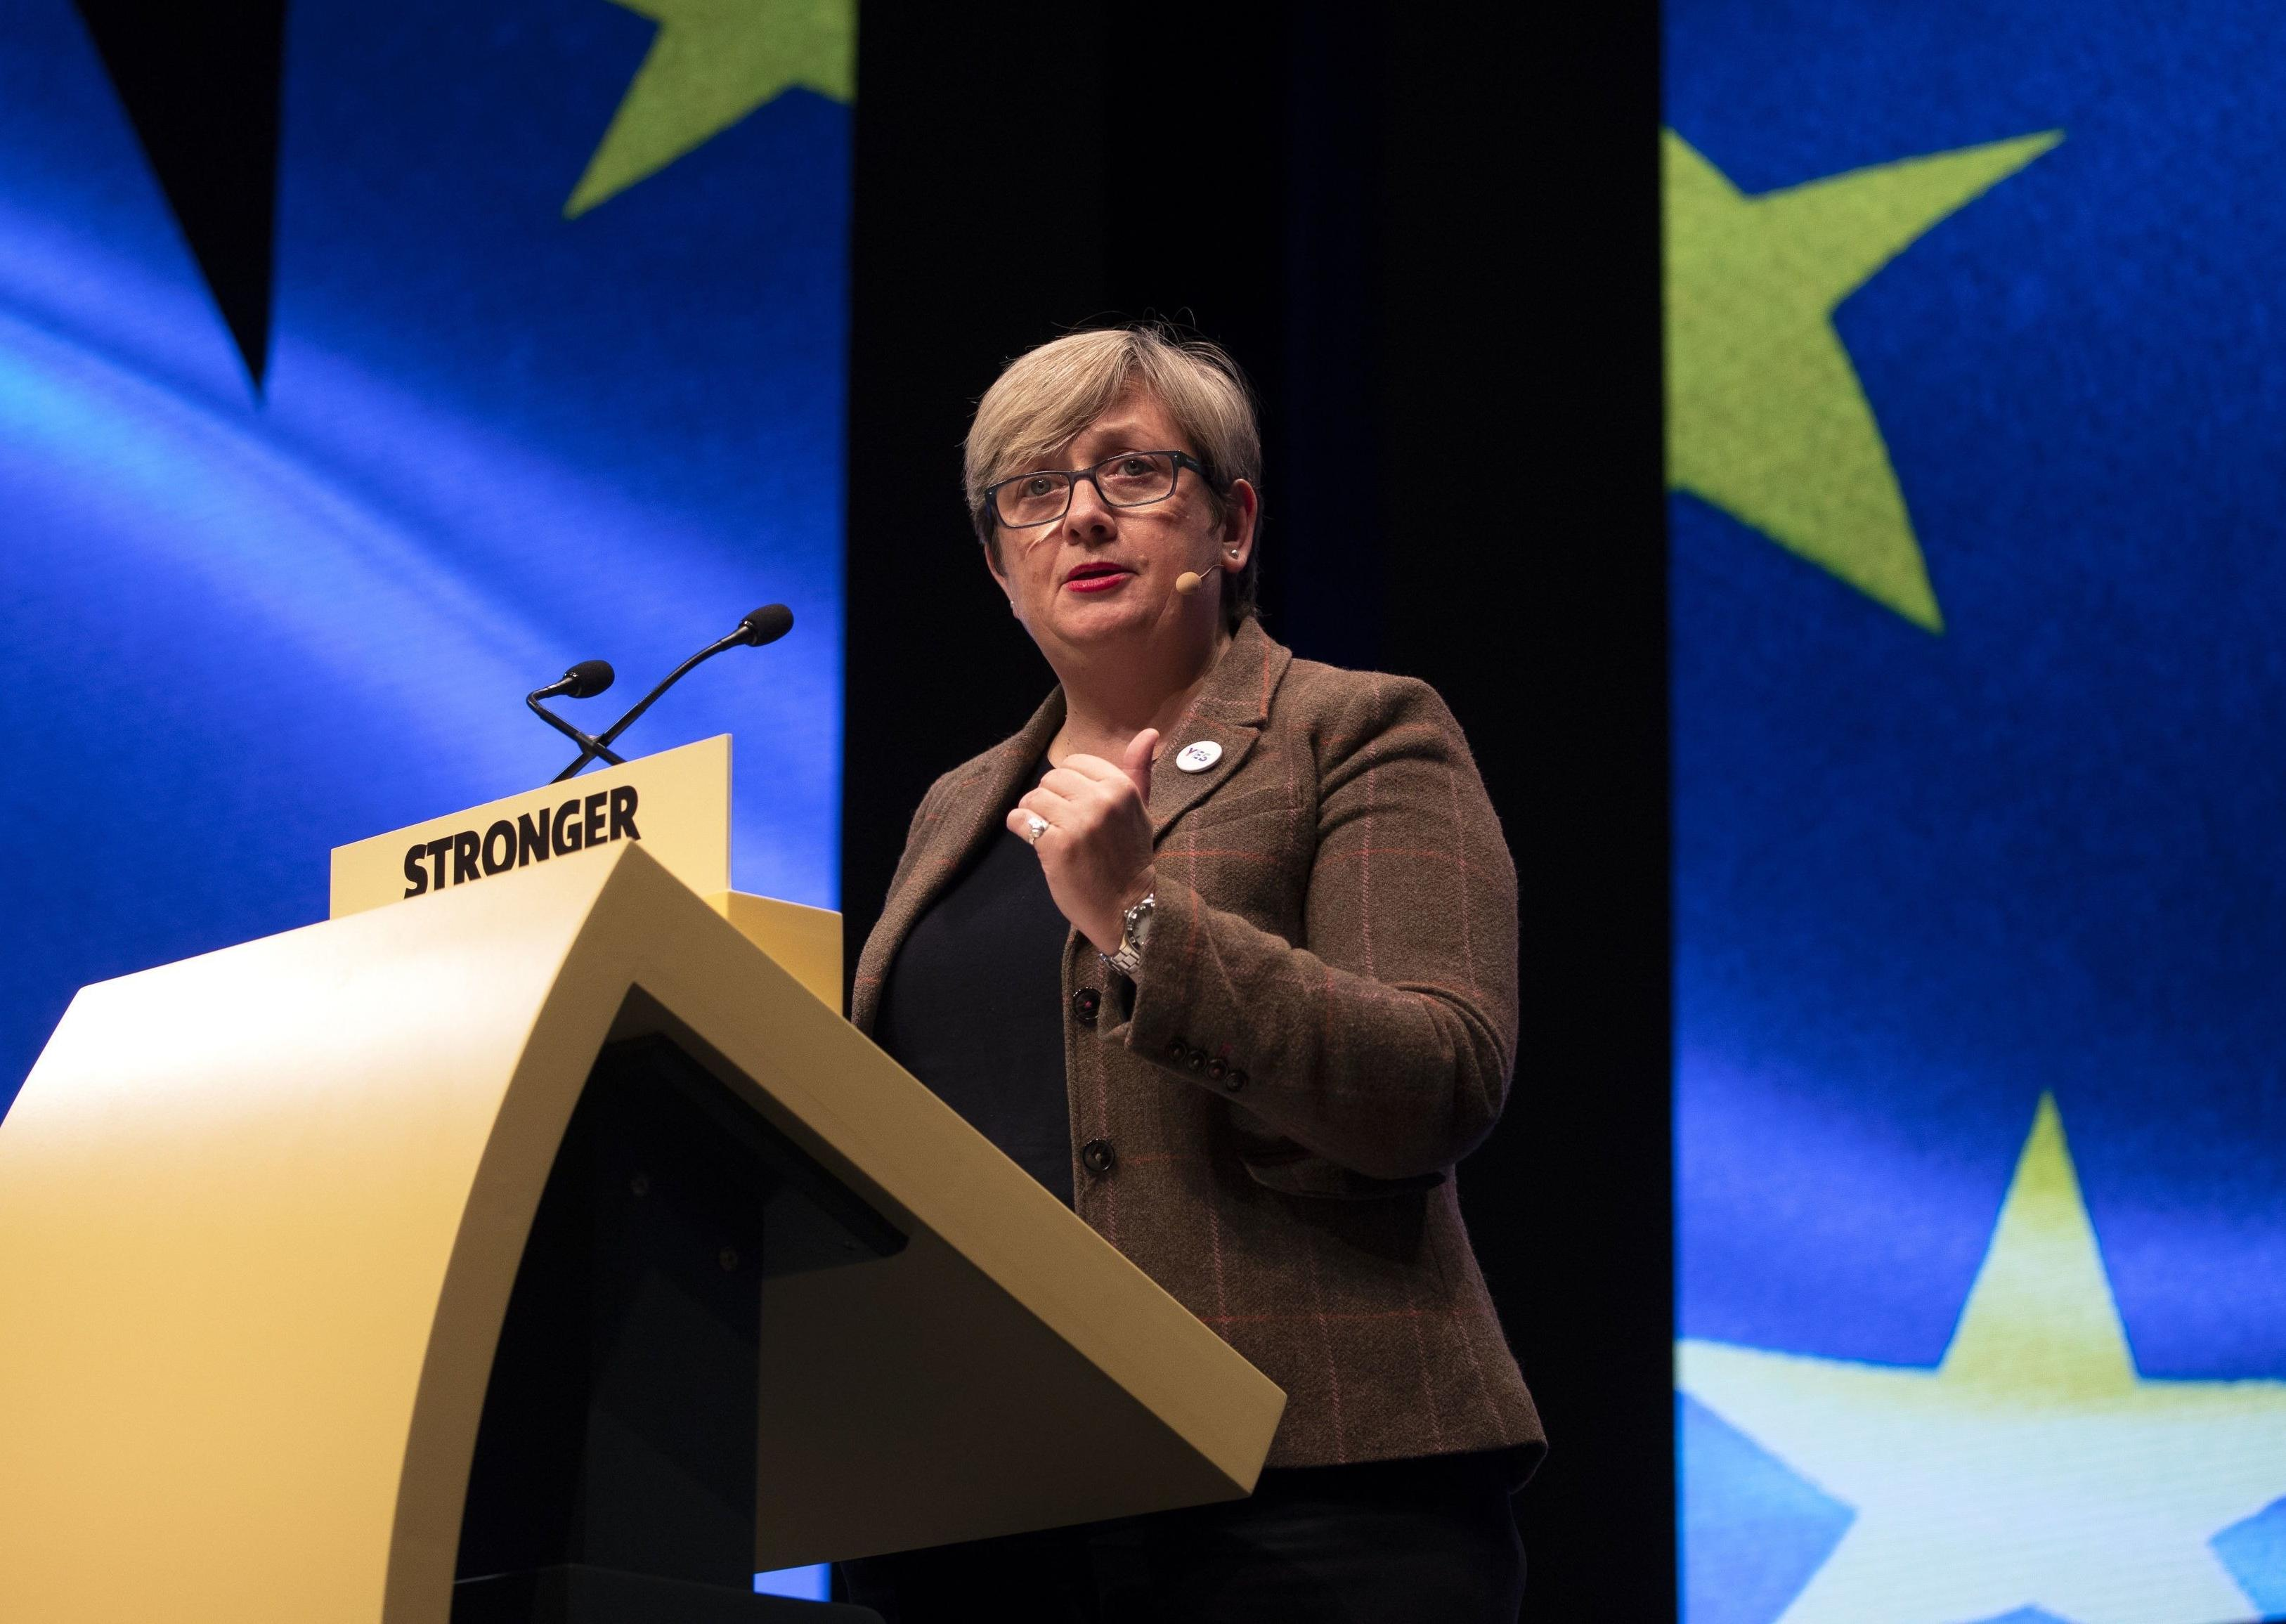 Scottish independence: Why Joanna Cherry vs Nicola Sturgeon would be a disaster – Helen Martin